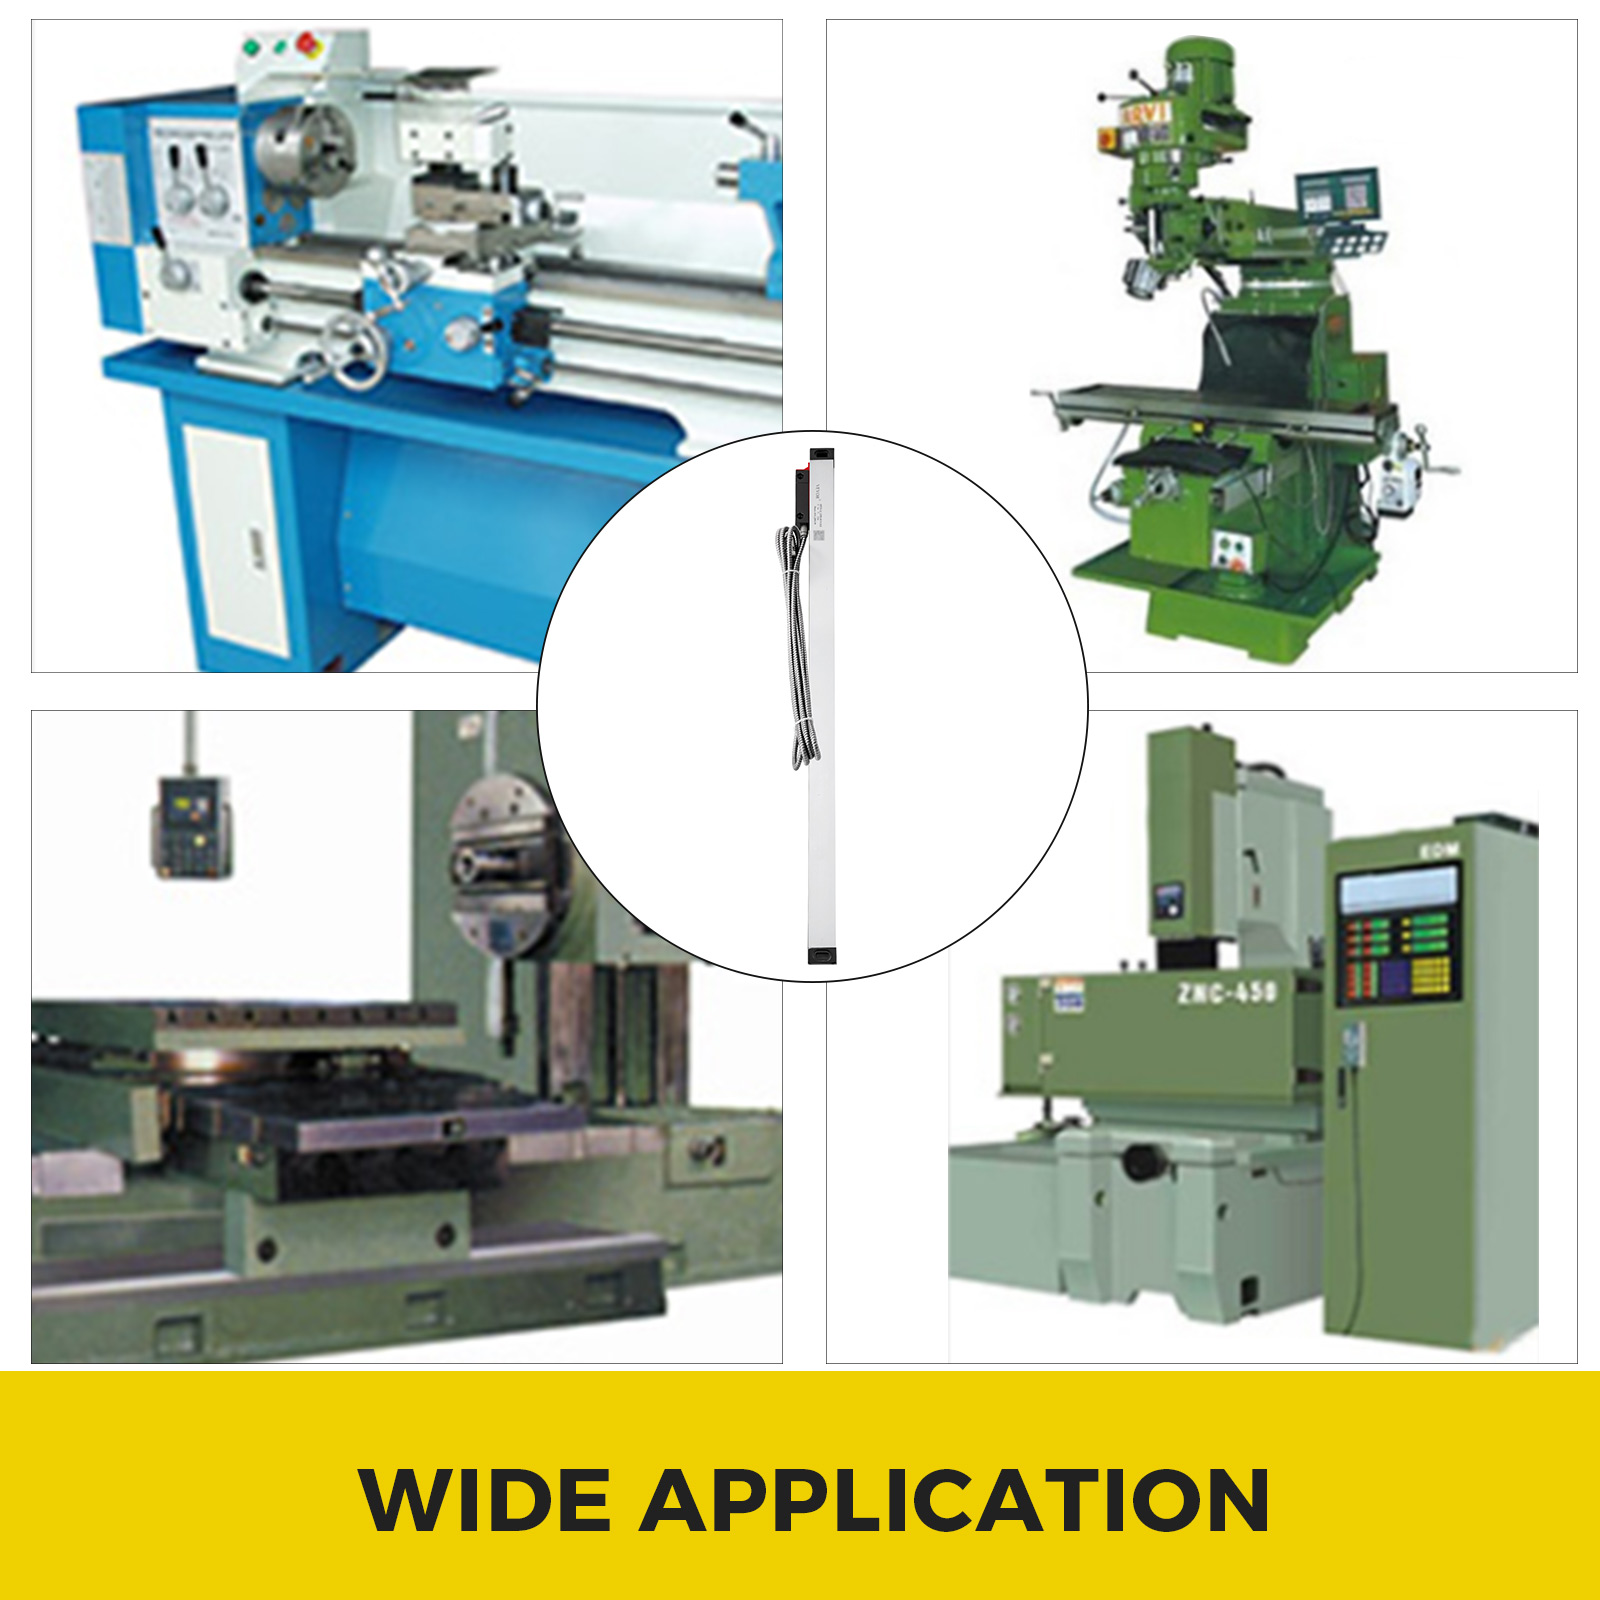 2-3-Axis-Digital-Readout-Linear-Scale-Double-Seal-5-Bearing-System-Grinding thumbnail 151